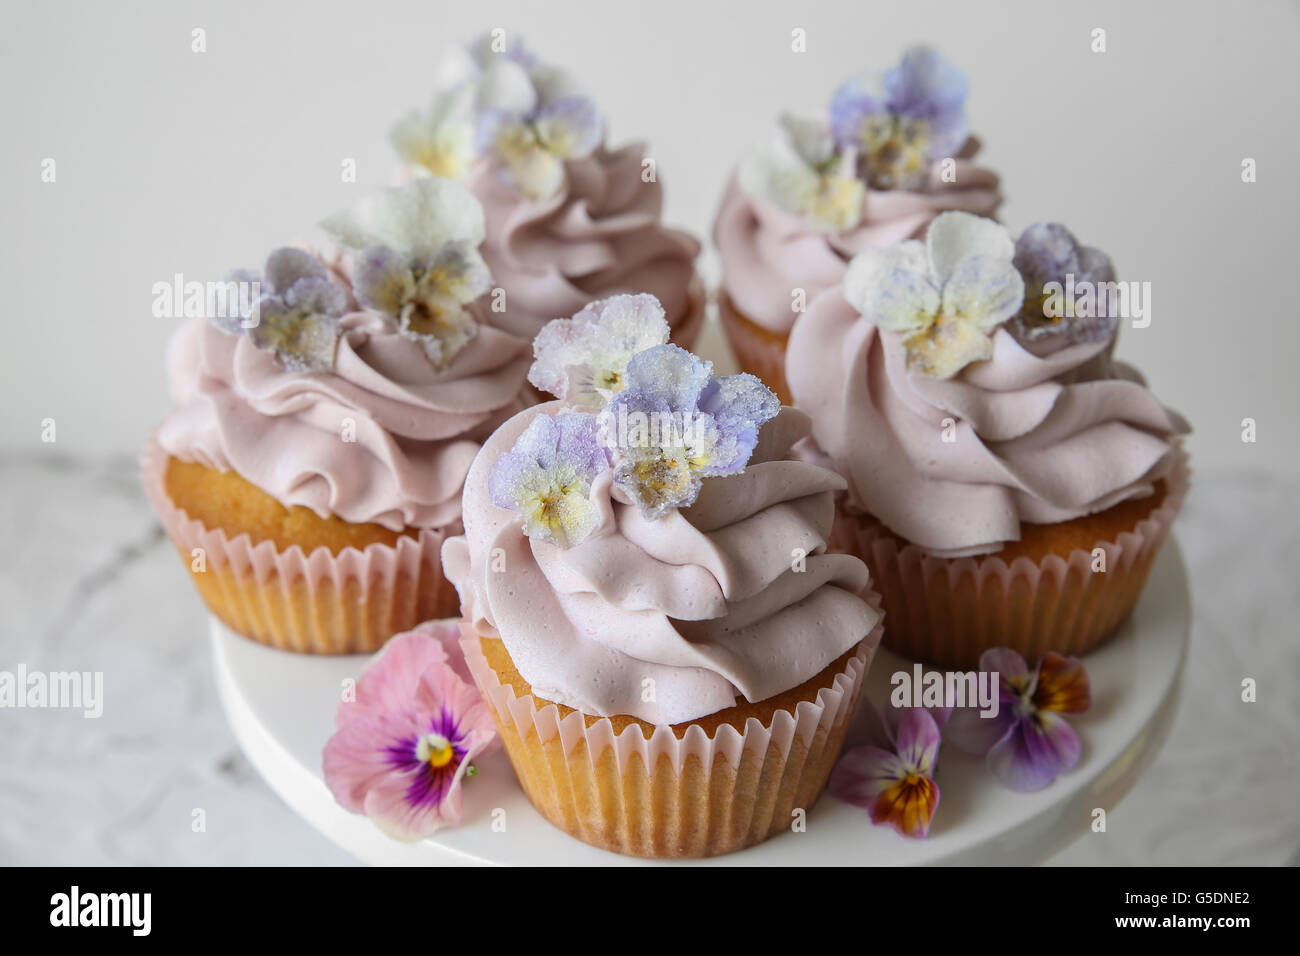 Purple cupcakes with sugared edible flowers on cake stand - Stock Image